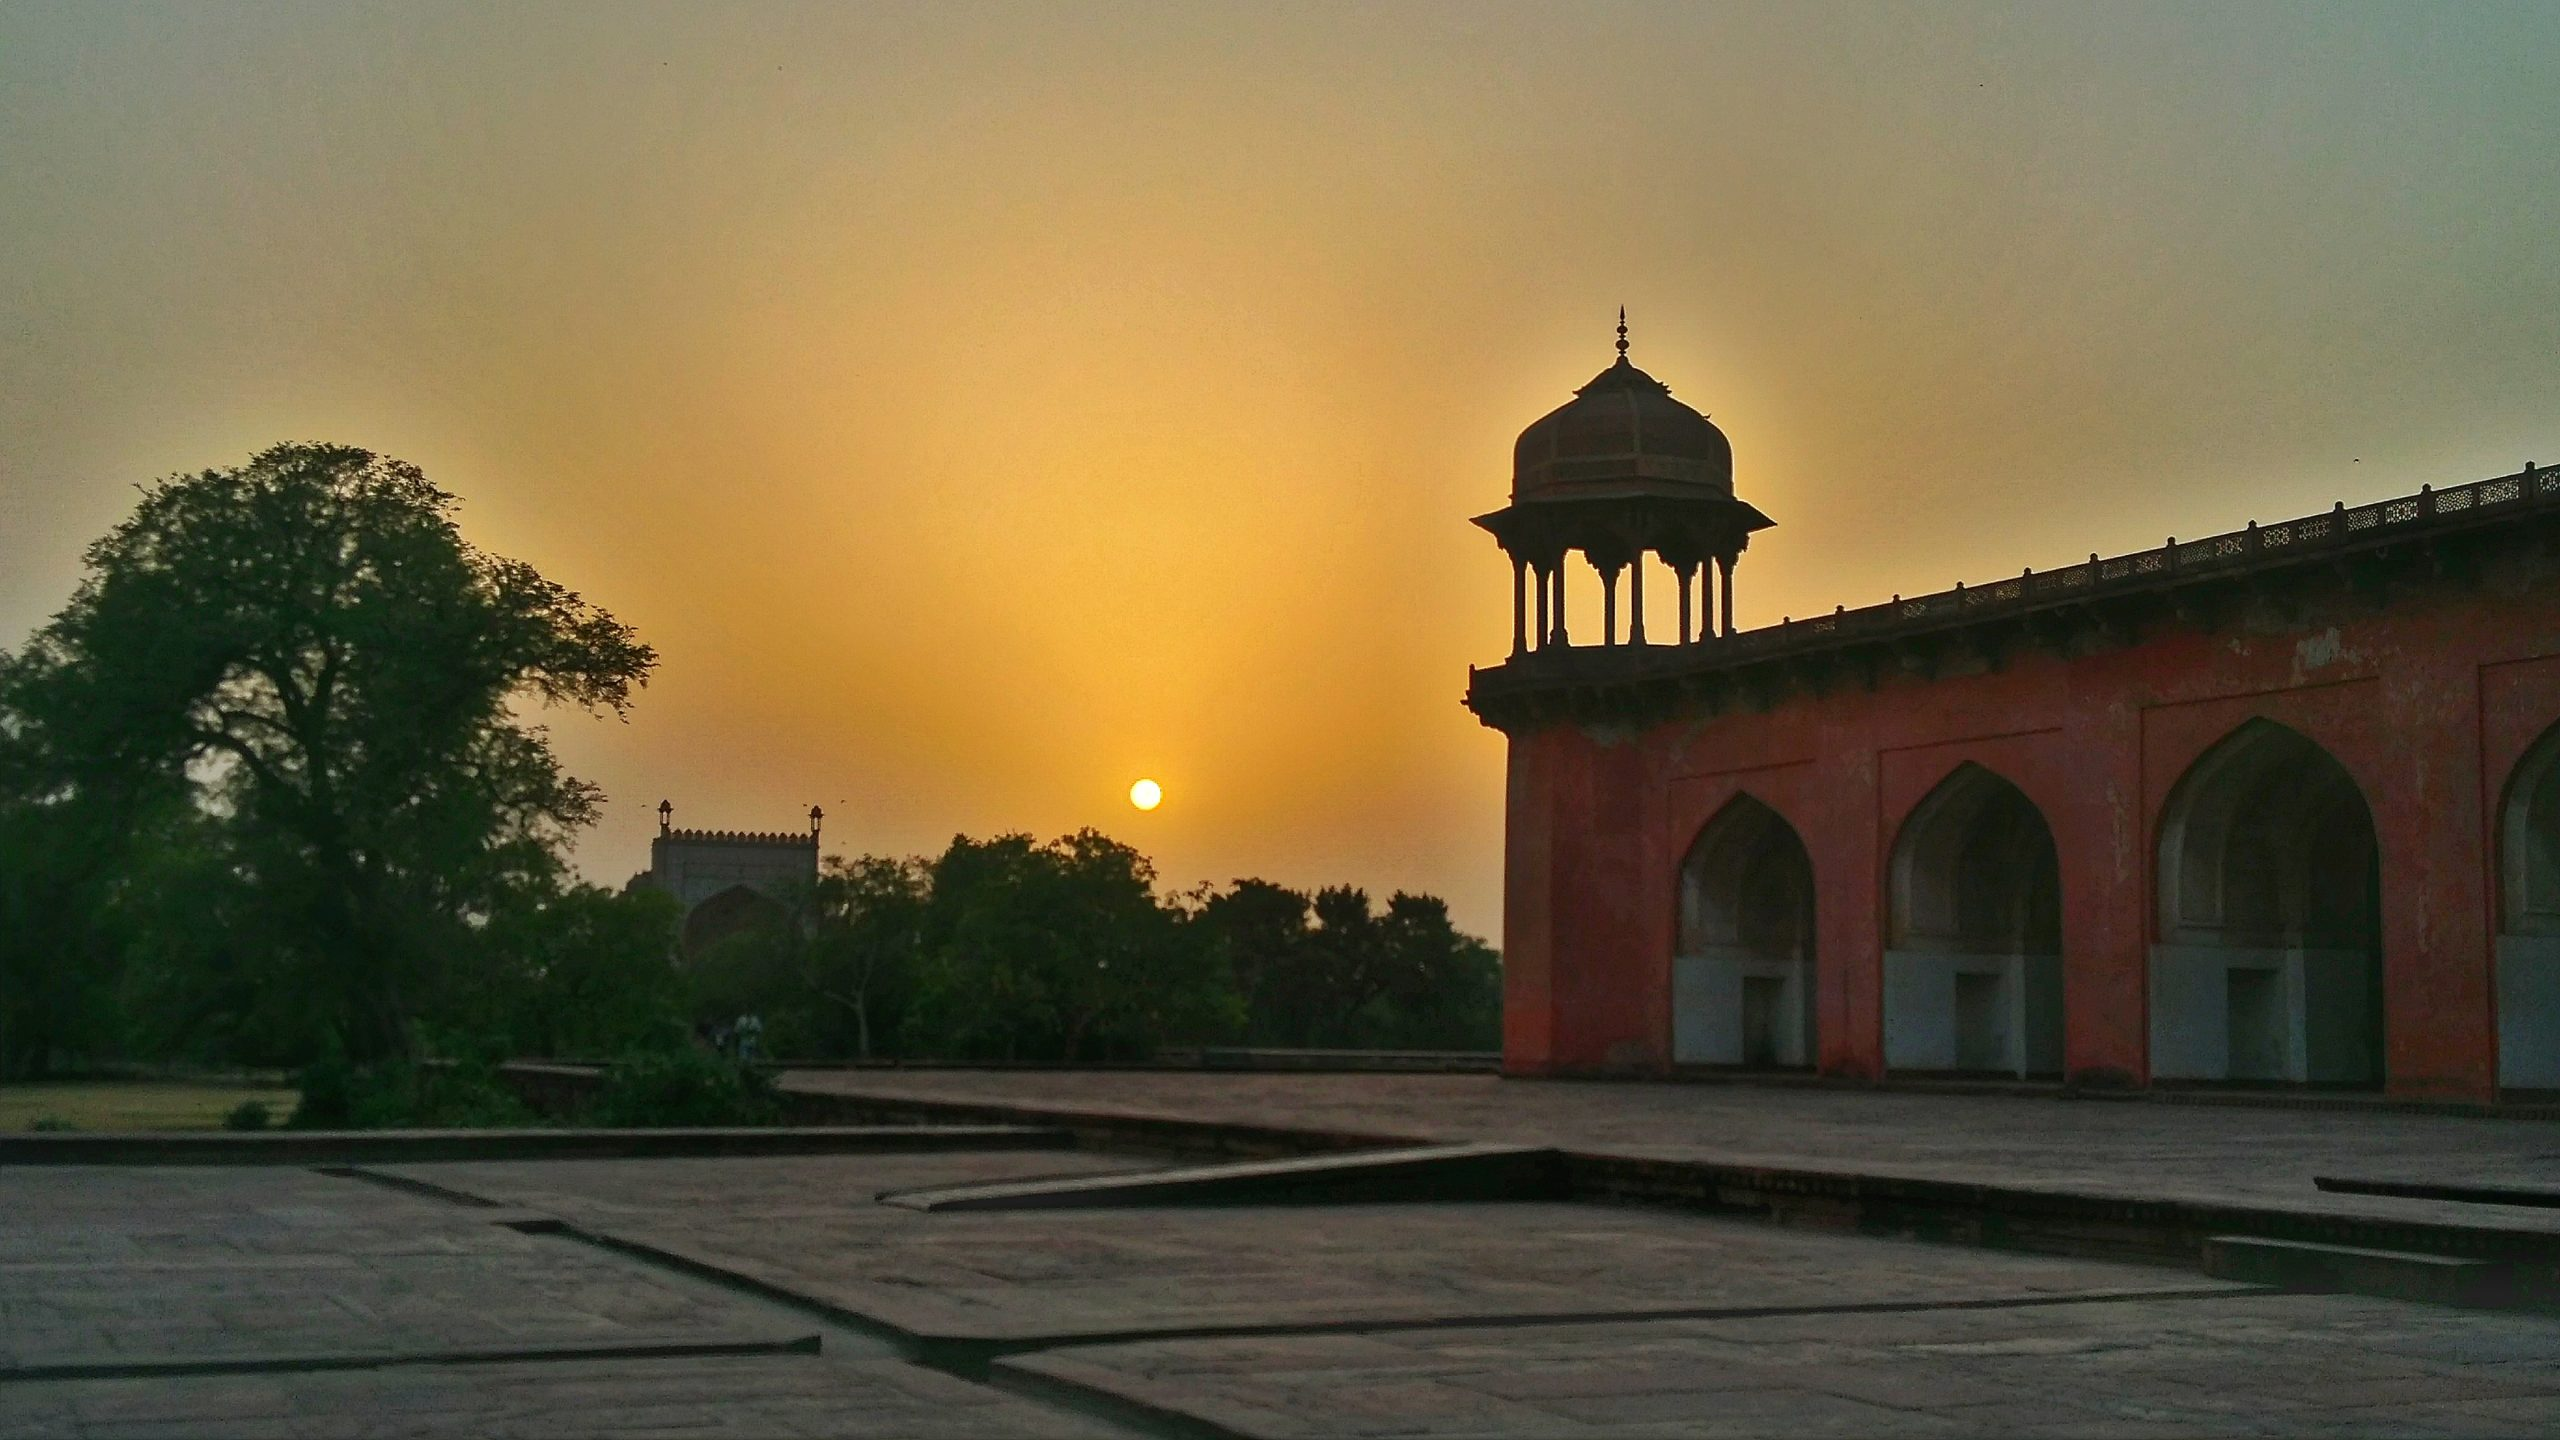 The Great Akbar's tomb in evening.